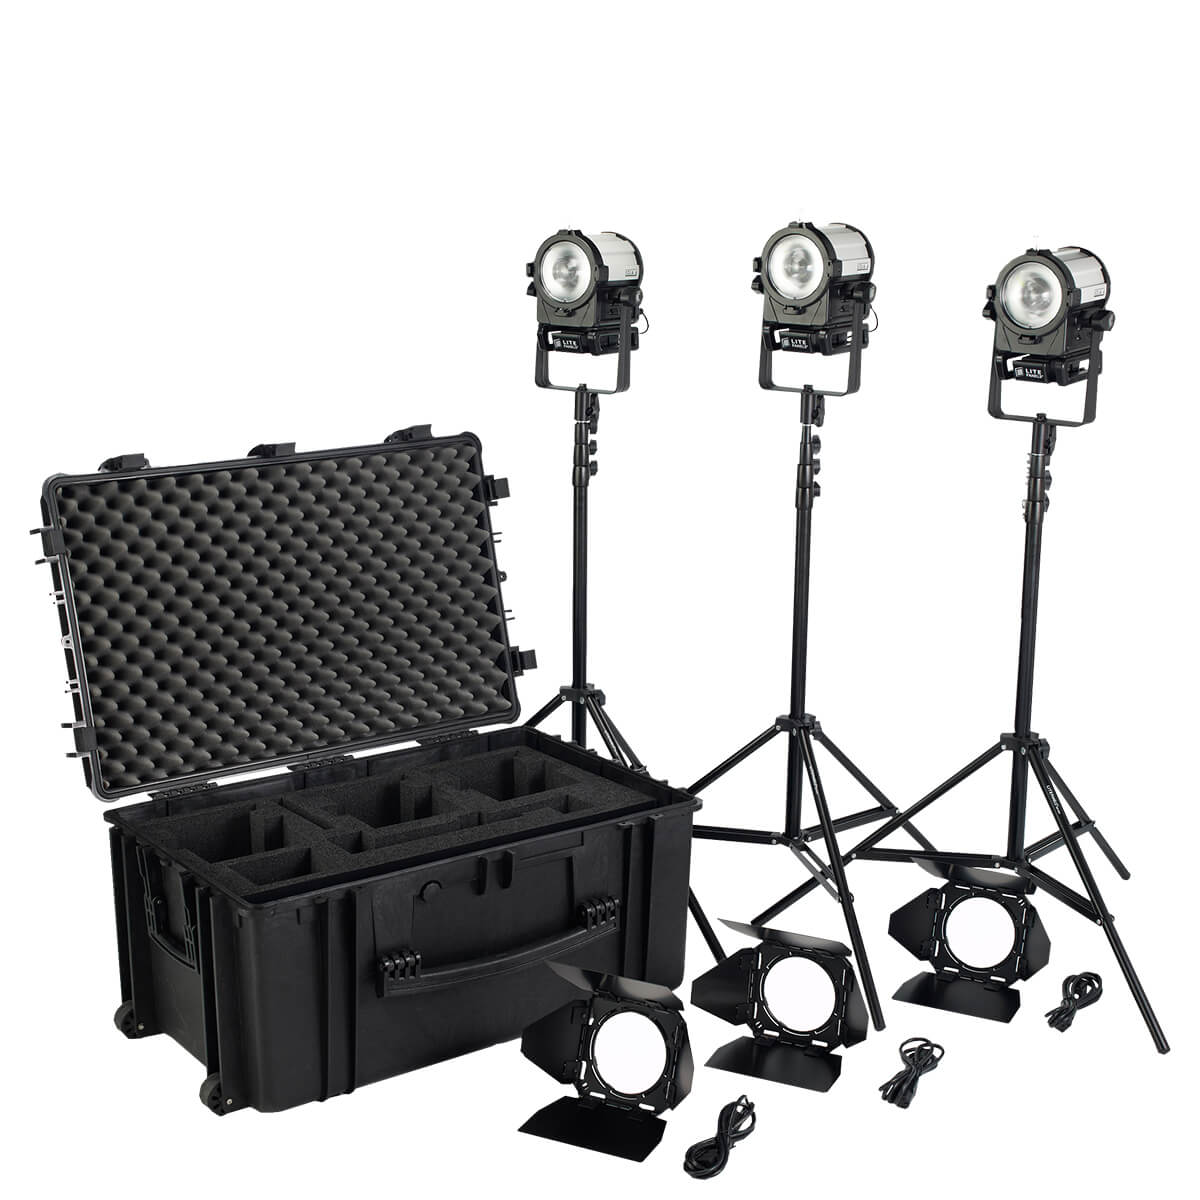 Caliber 3 Light Kit Litepanels